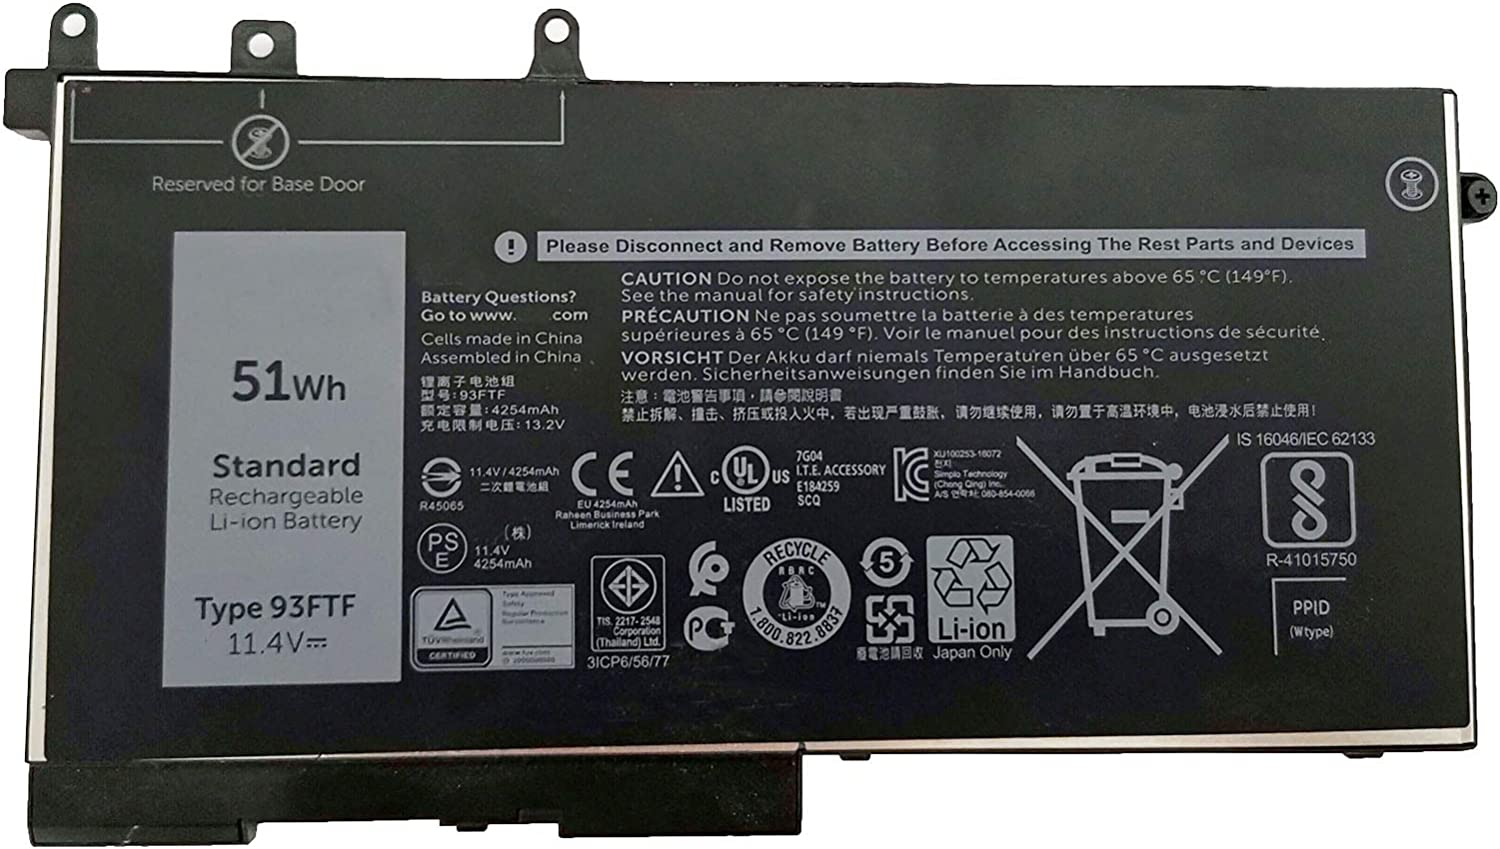 Dentsing 11.4V 51Wh 93FTF Laptop Battery Replacement For Dell Precision 15 3520 LatitudeE5480 E5580 E5590 5280 Series Notebook D4CMT